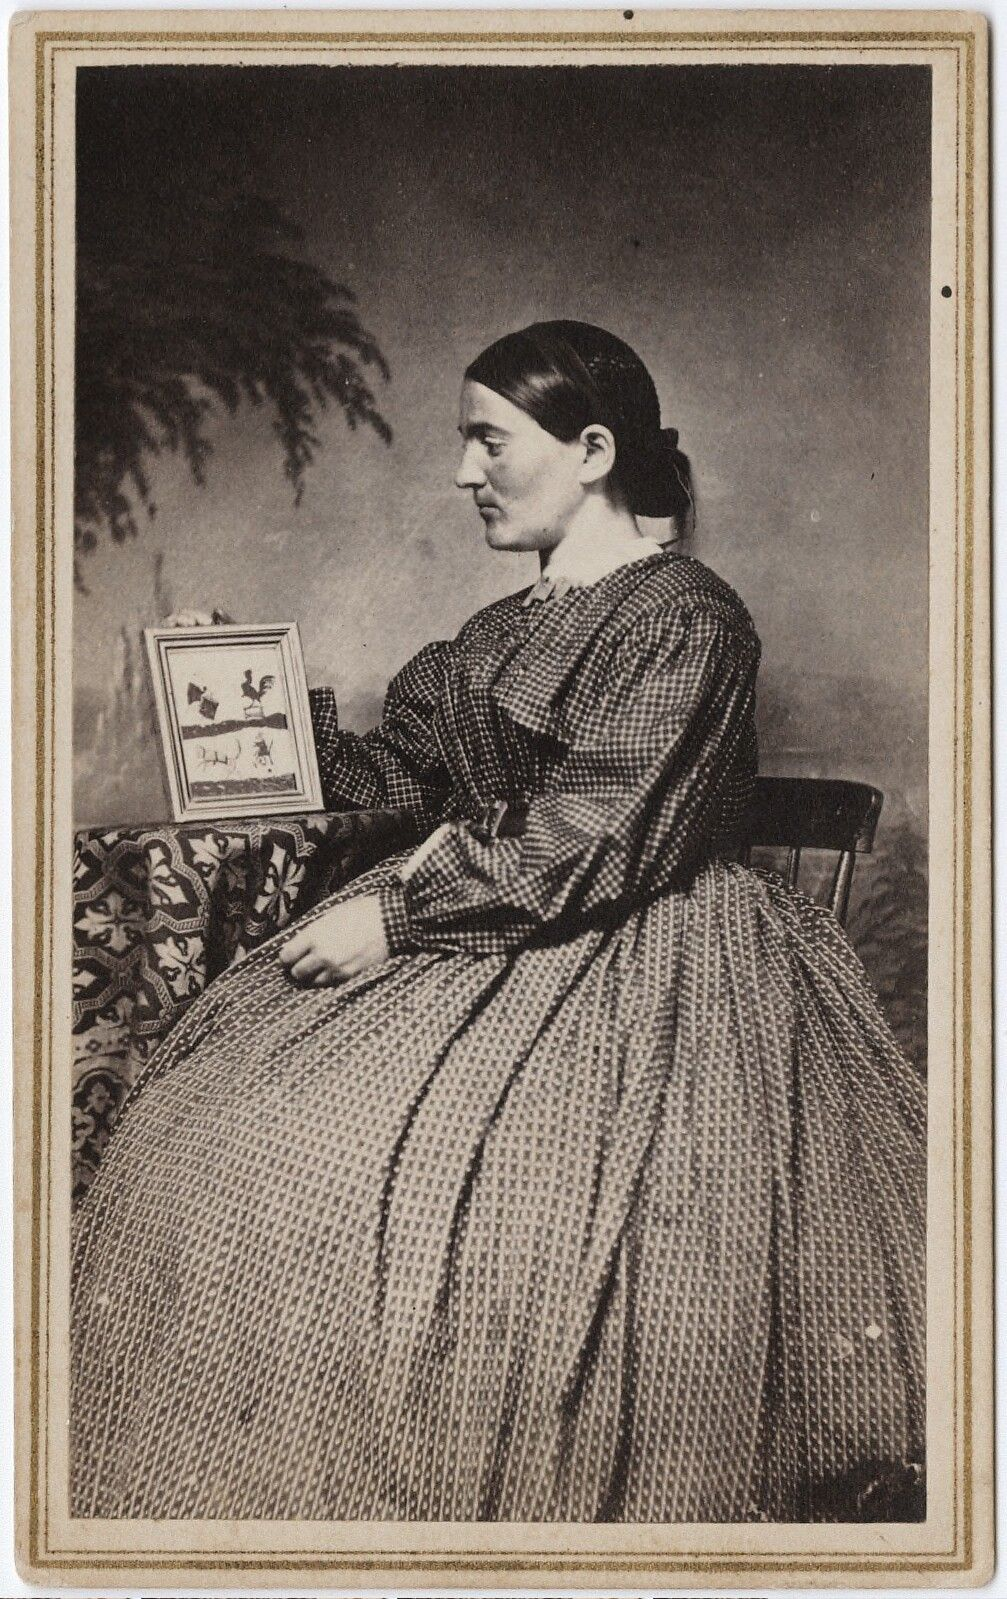 1855 95 Carte De Visite Portrait Of A Woman Holding Framed Picture Joseph P Lowe Via The Yale Collection Western Americana Be